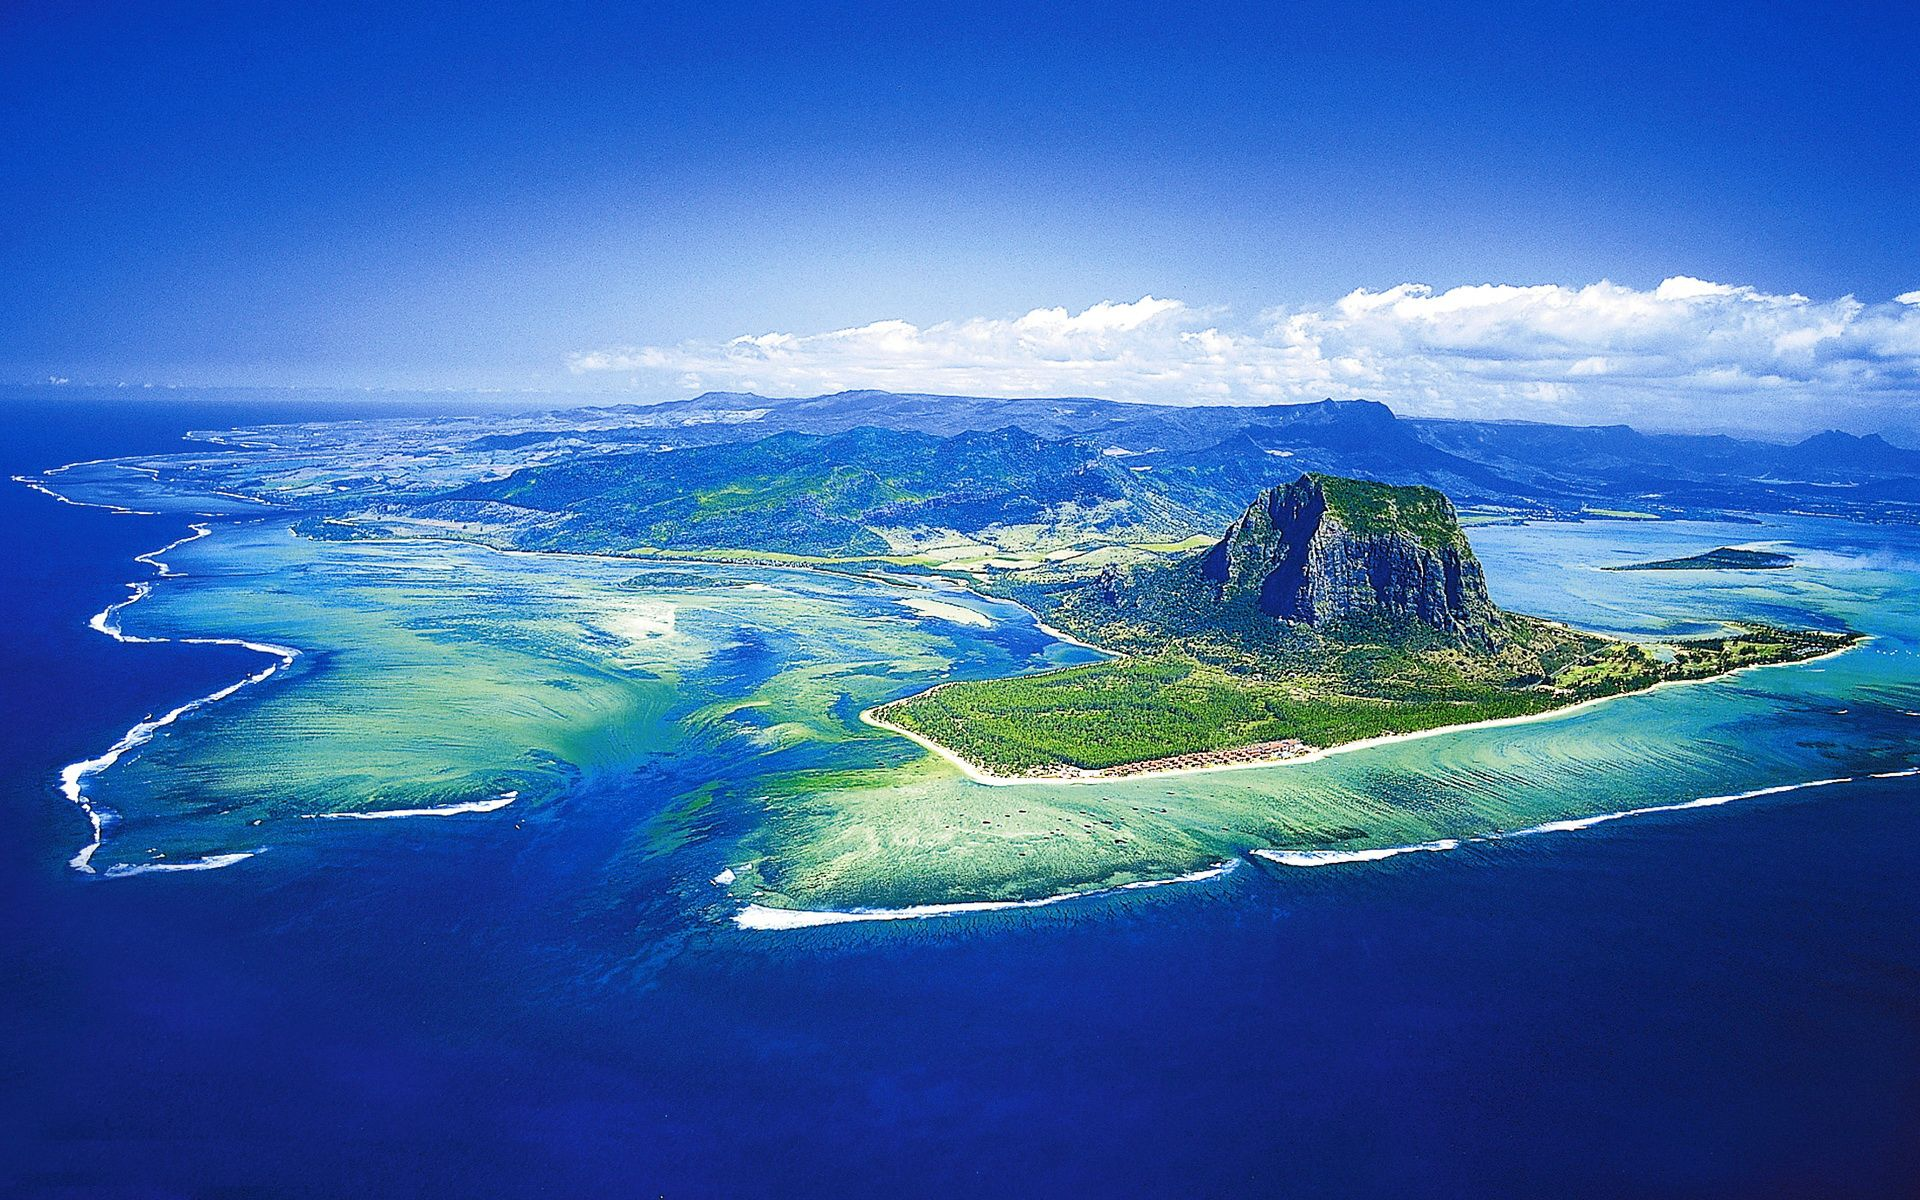 MAURITIUS AS AN ADVANTAGE PLATFORM FOR THE ENTERTAINMENT INDUSTRY